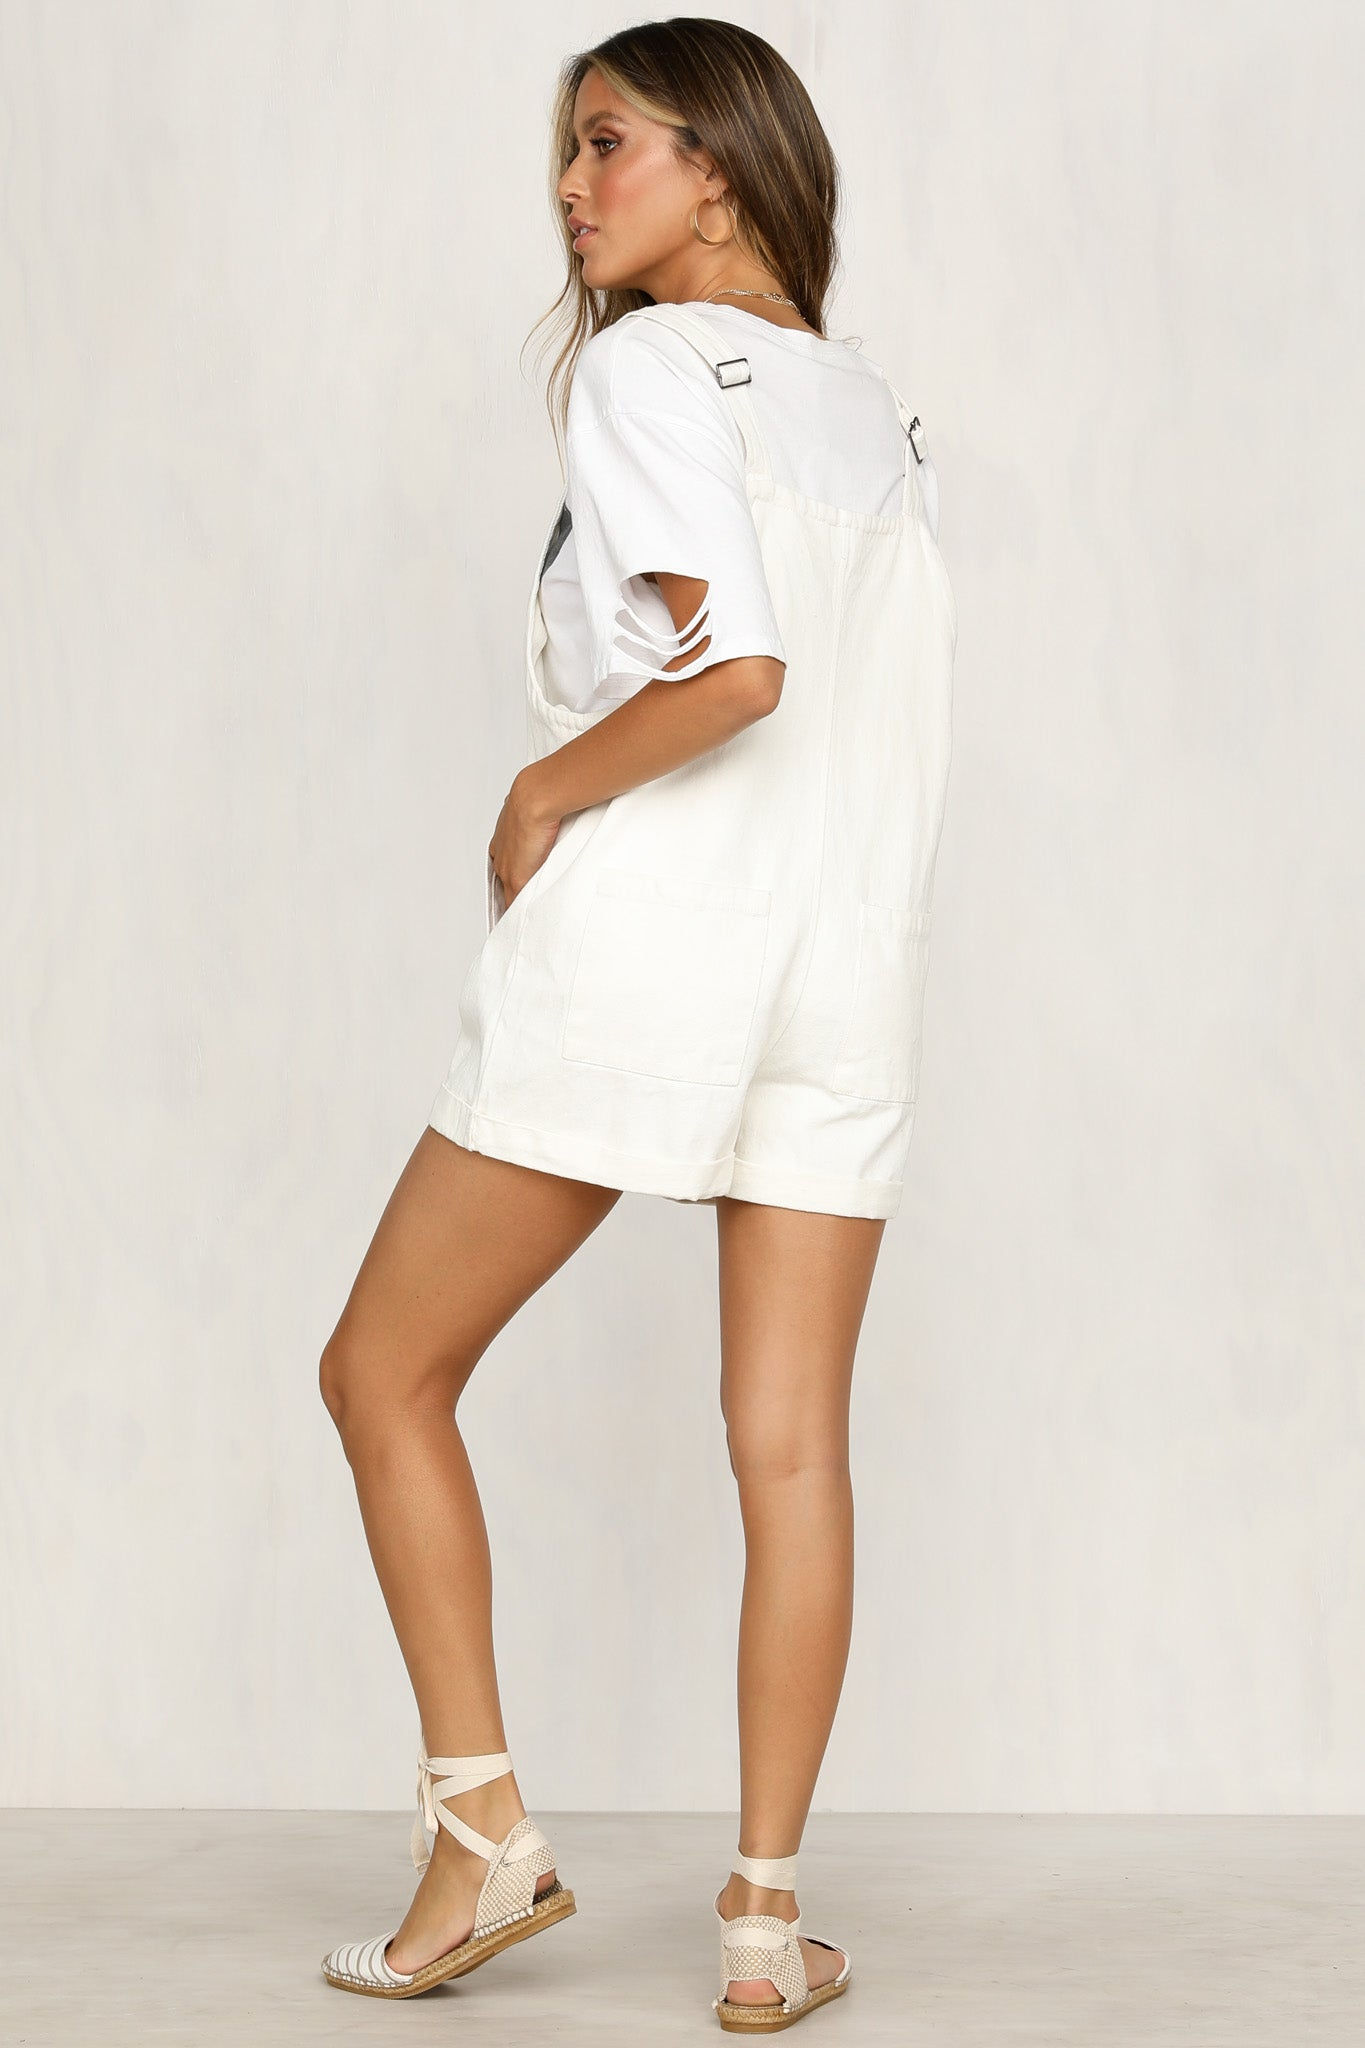 Take Care Playsuit (White)